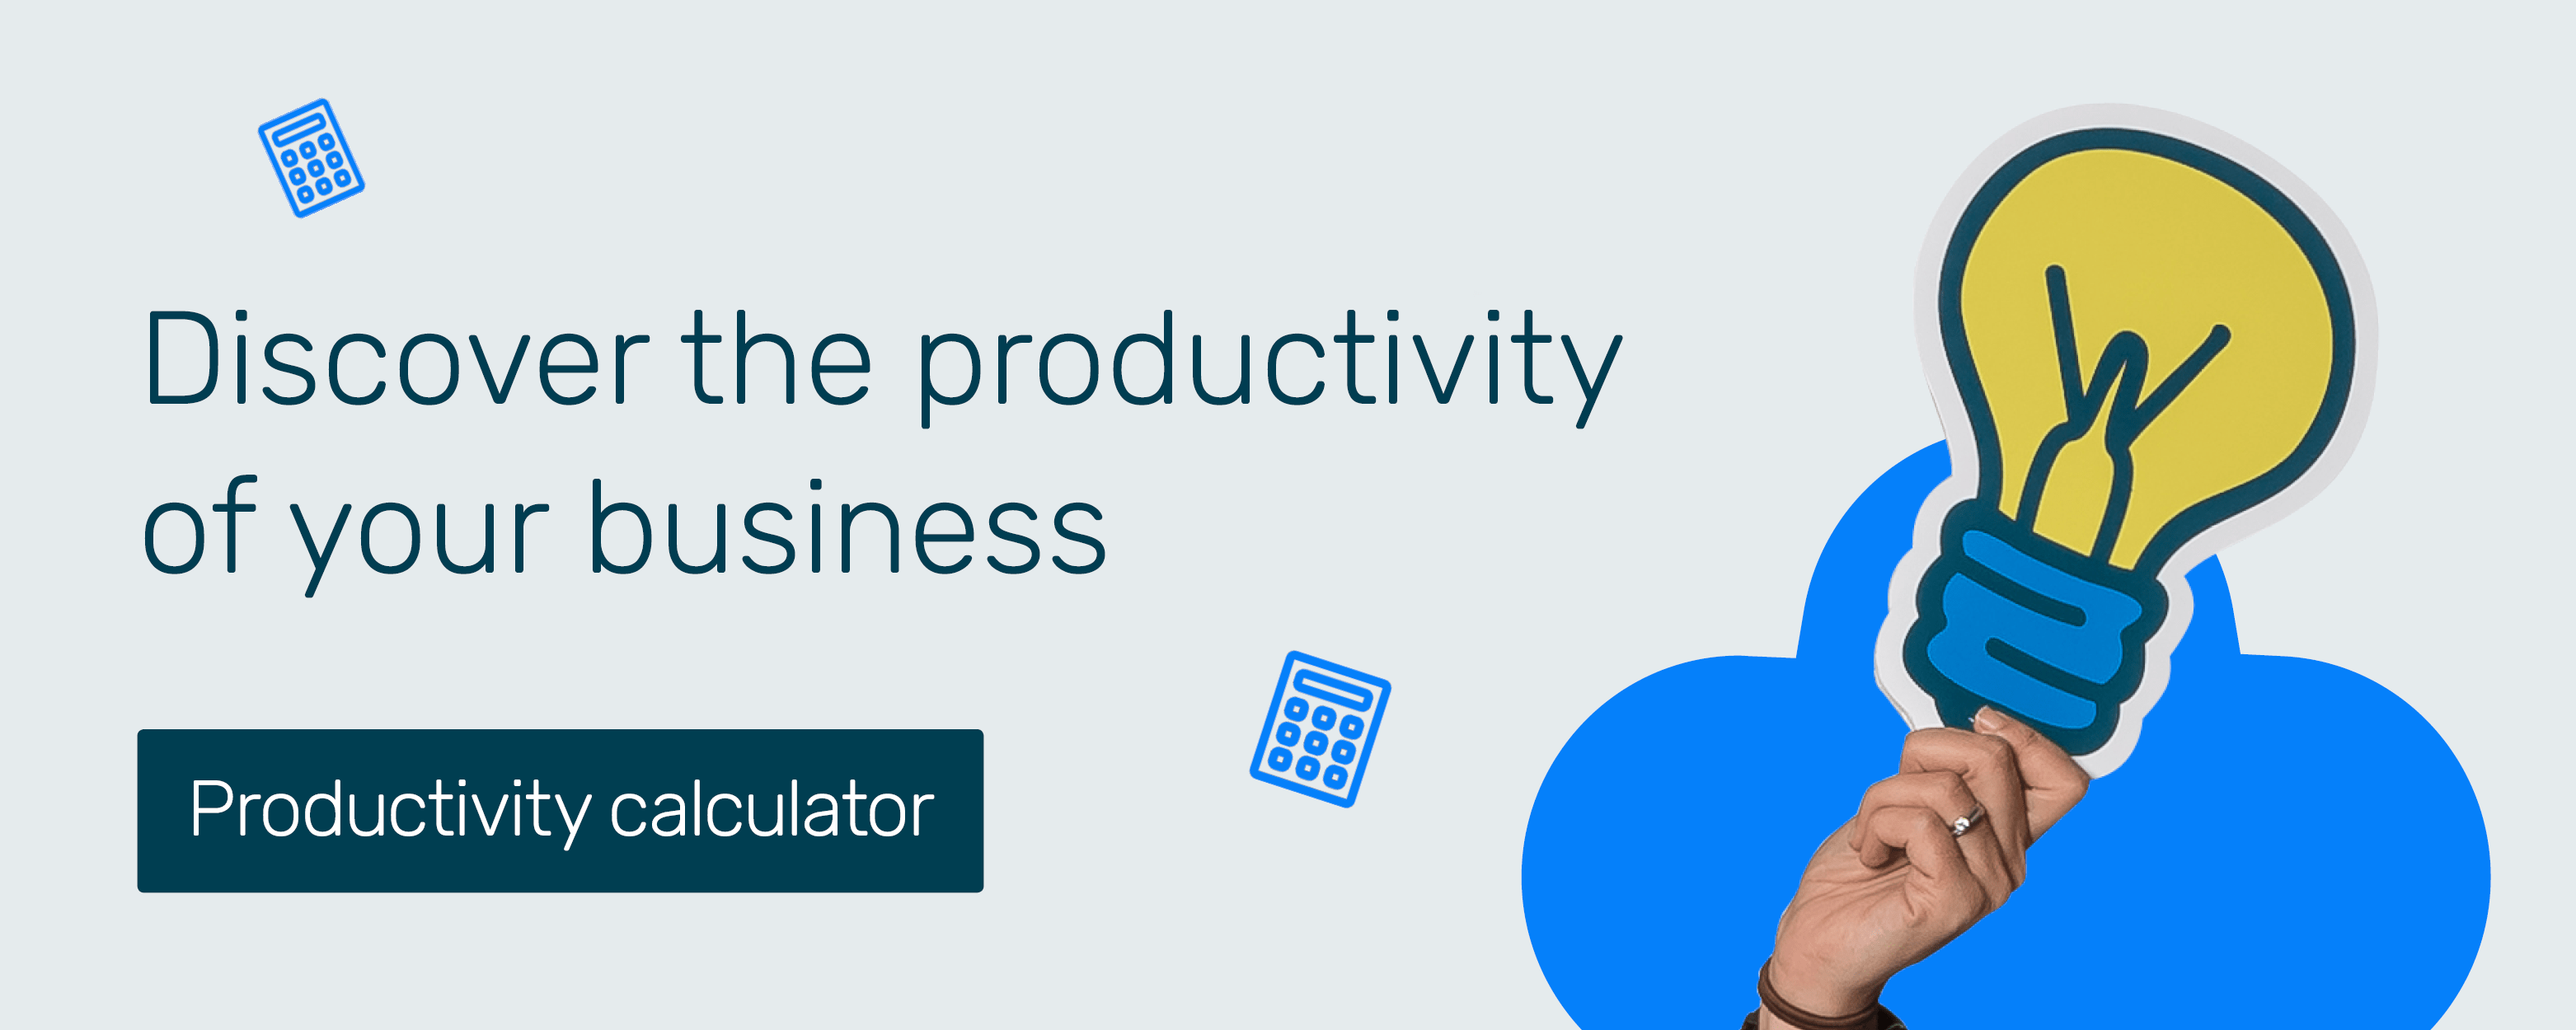 Productivity calculator CTA